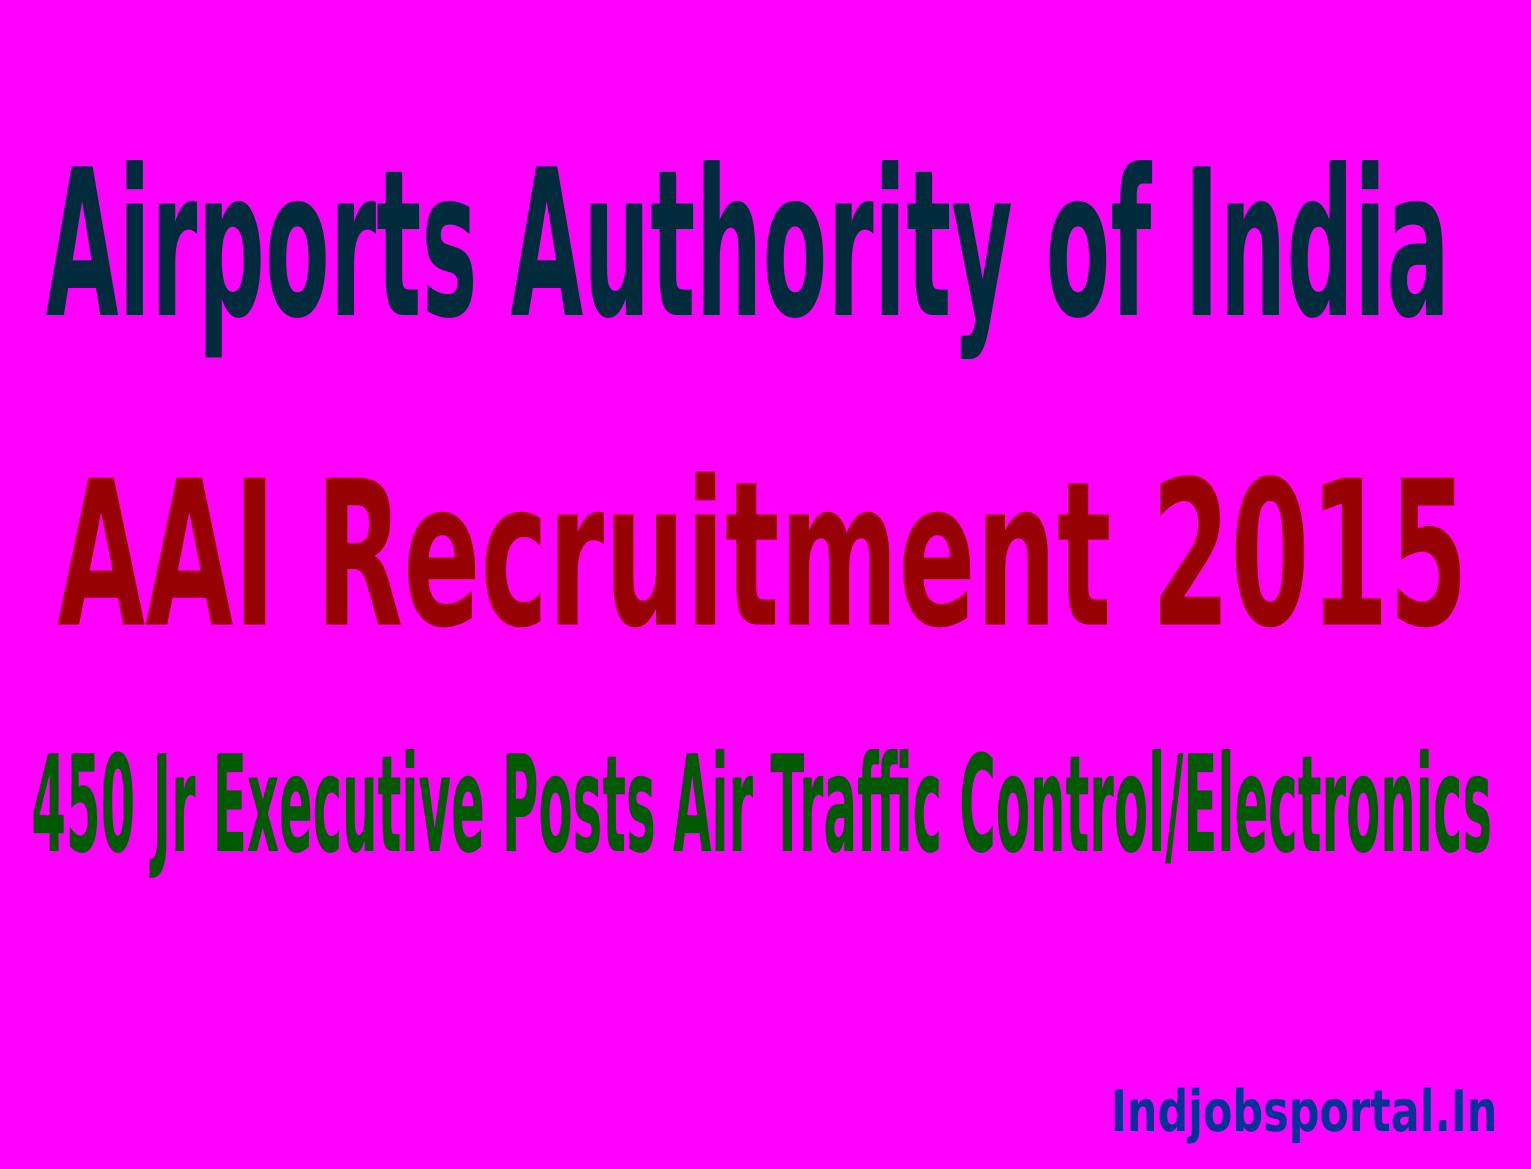 AAI Recruitment 2015 Apply Online For 450 Jr Executive Posts Air Traffic Control/Electronics